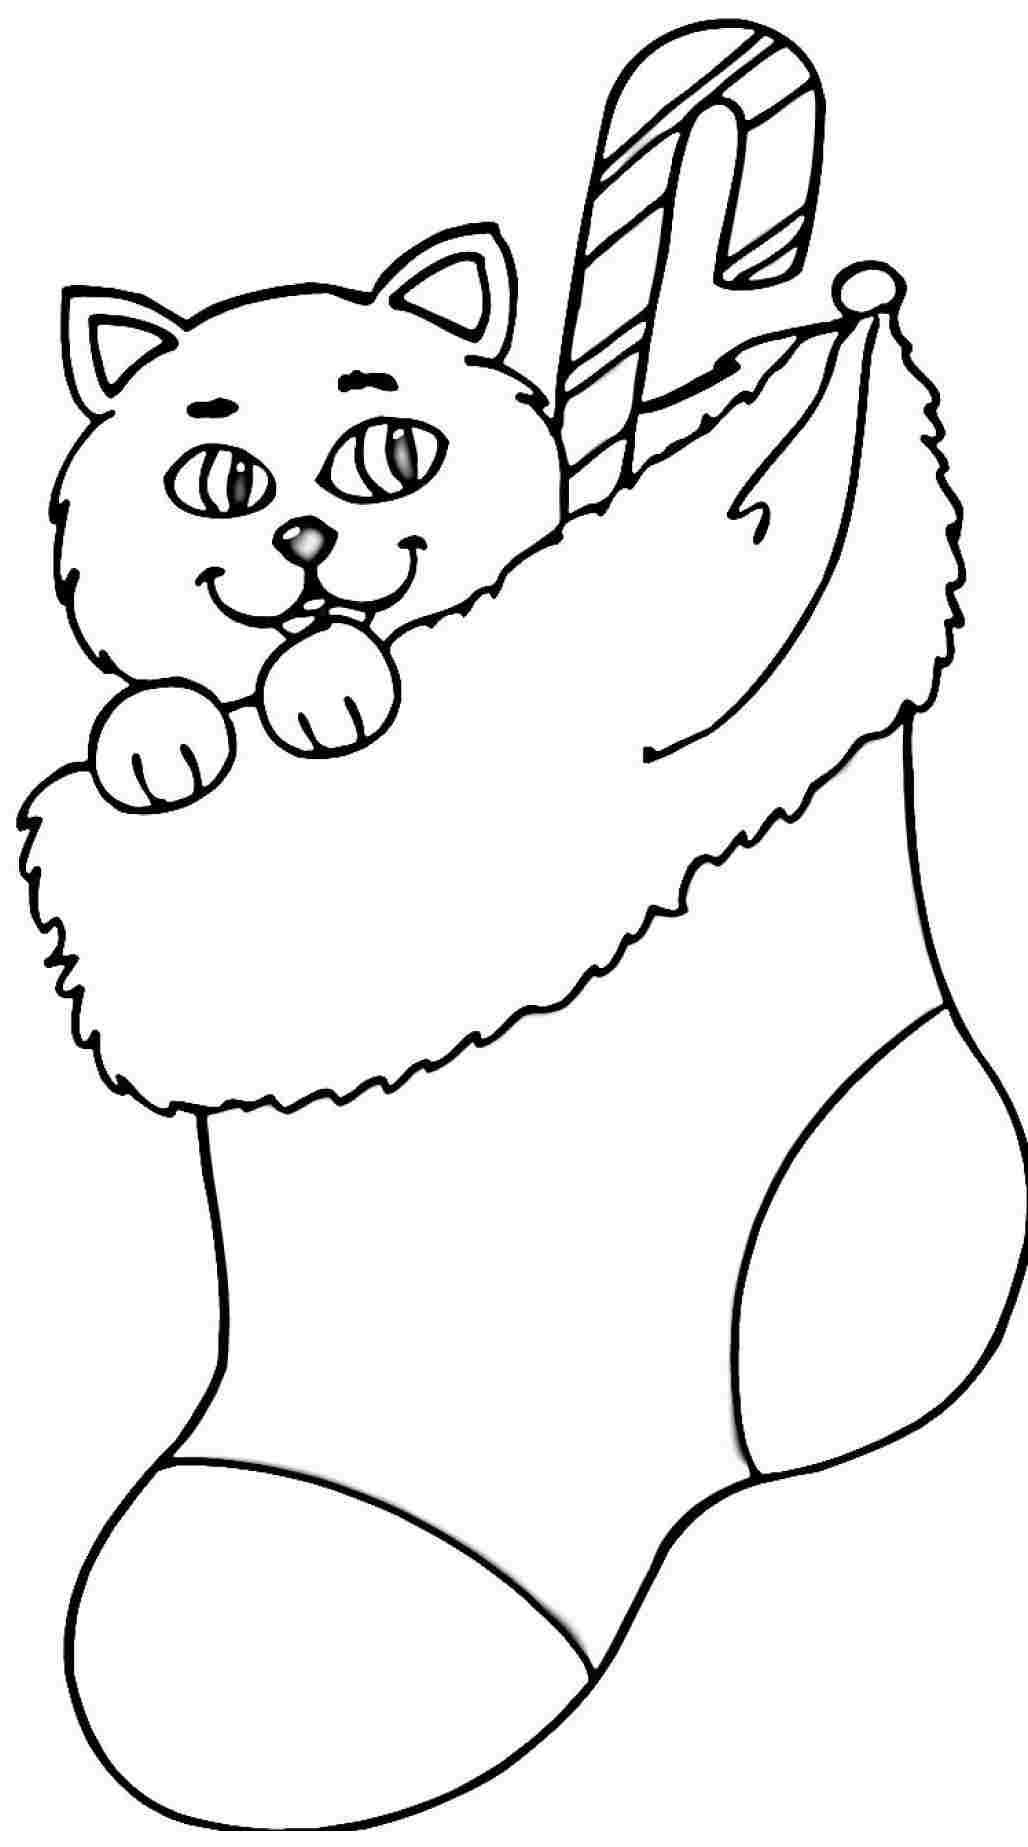 Printable Christmas Stocking Coloring